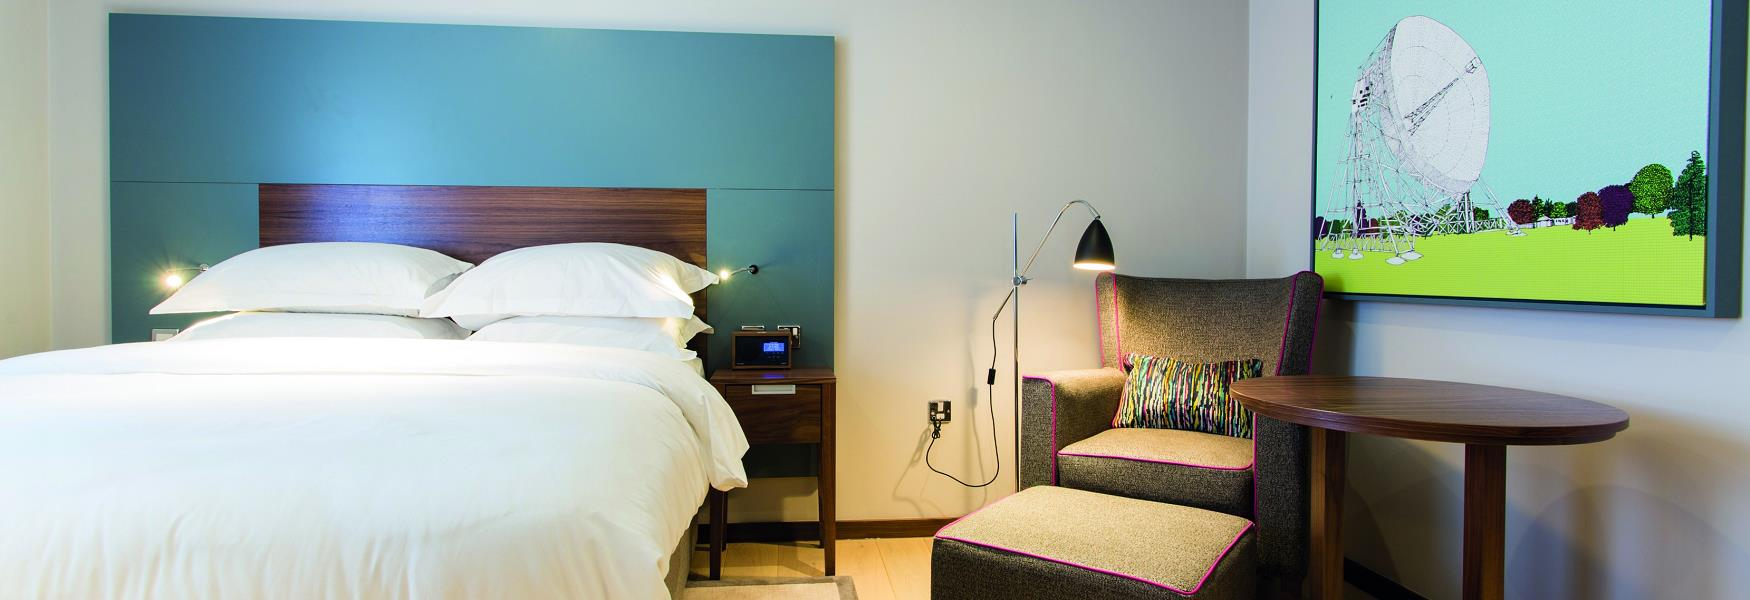 Cottons Hotel & Spa